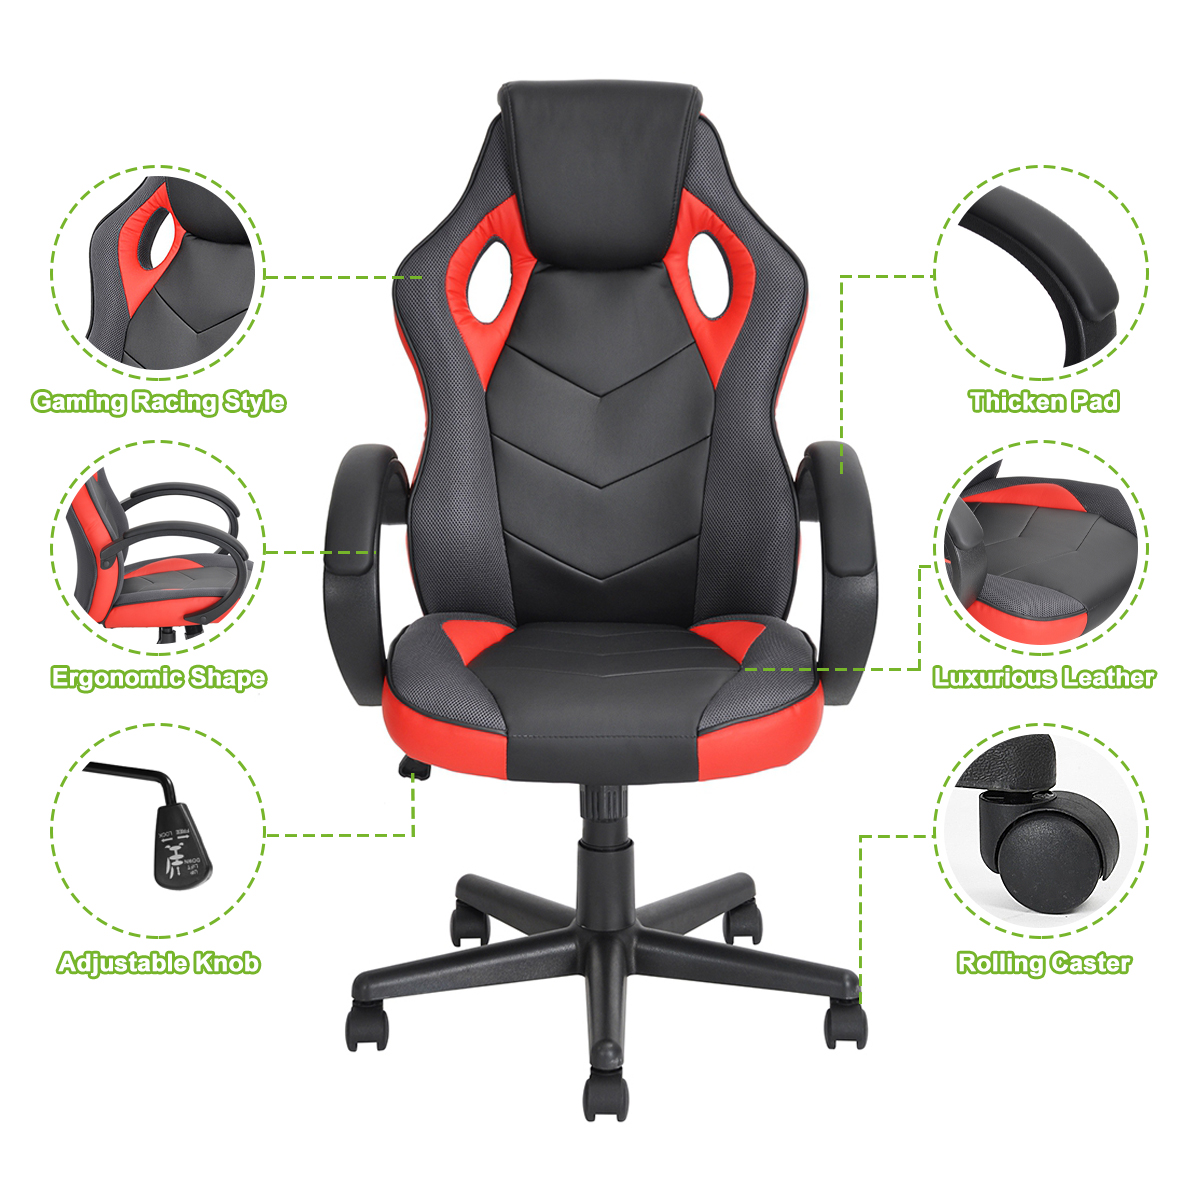 thumbnail 23 - Gaming Racing Chair Office High Back Ergonomic Computer Desk Swivel PU Leather